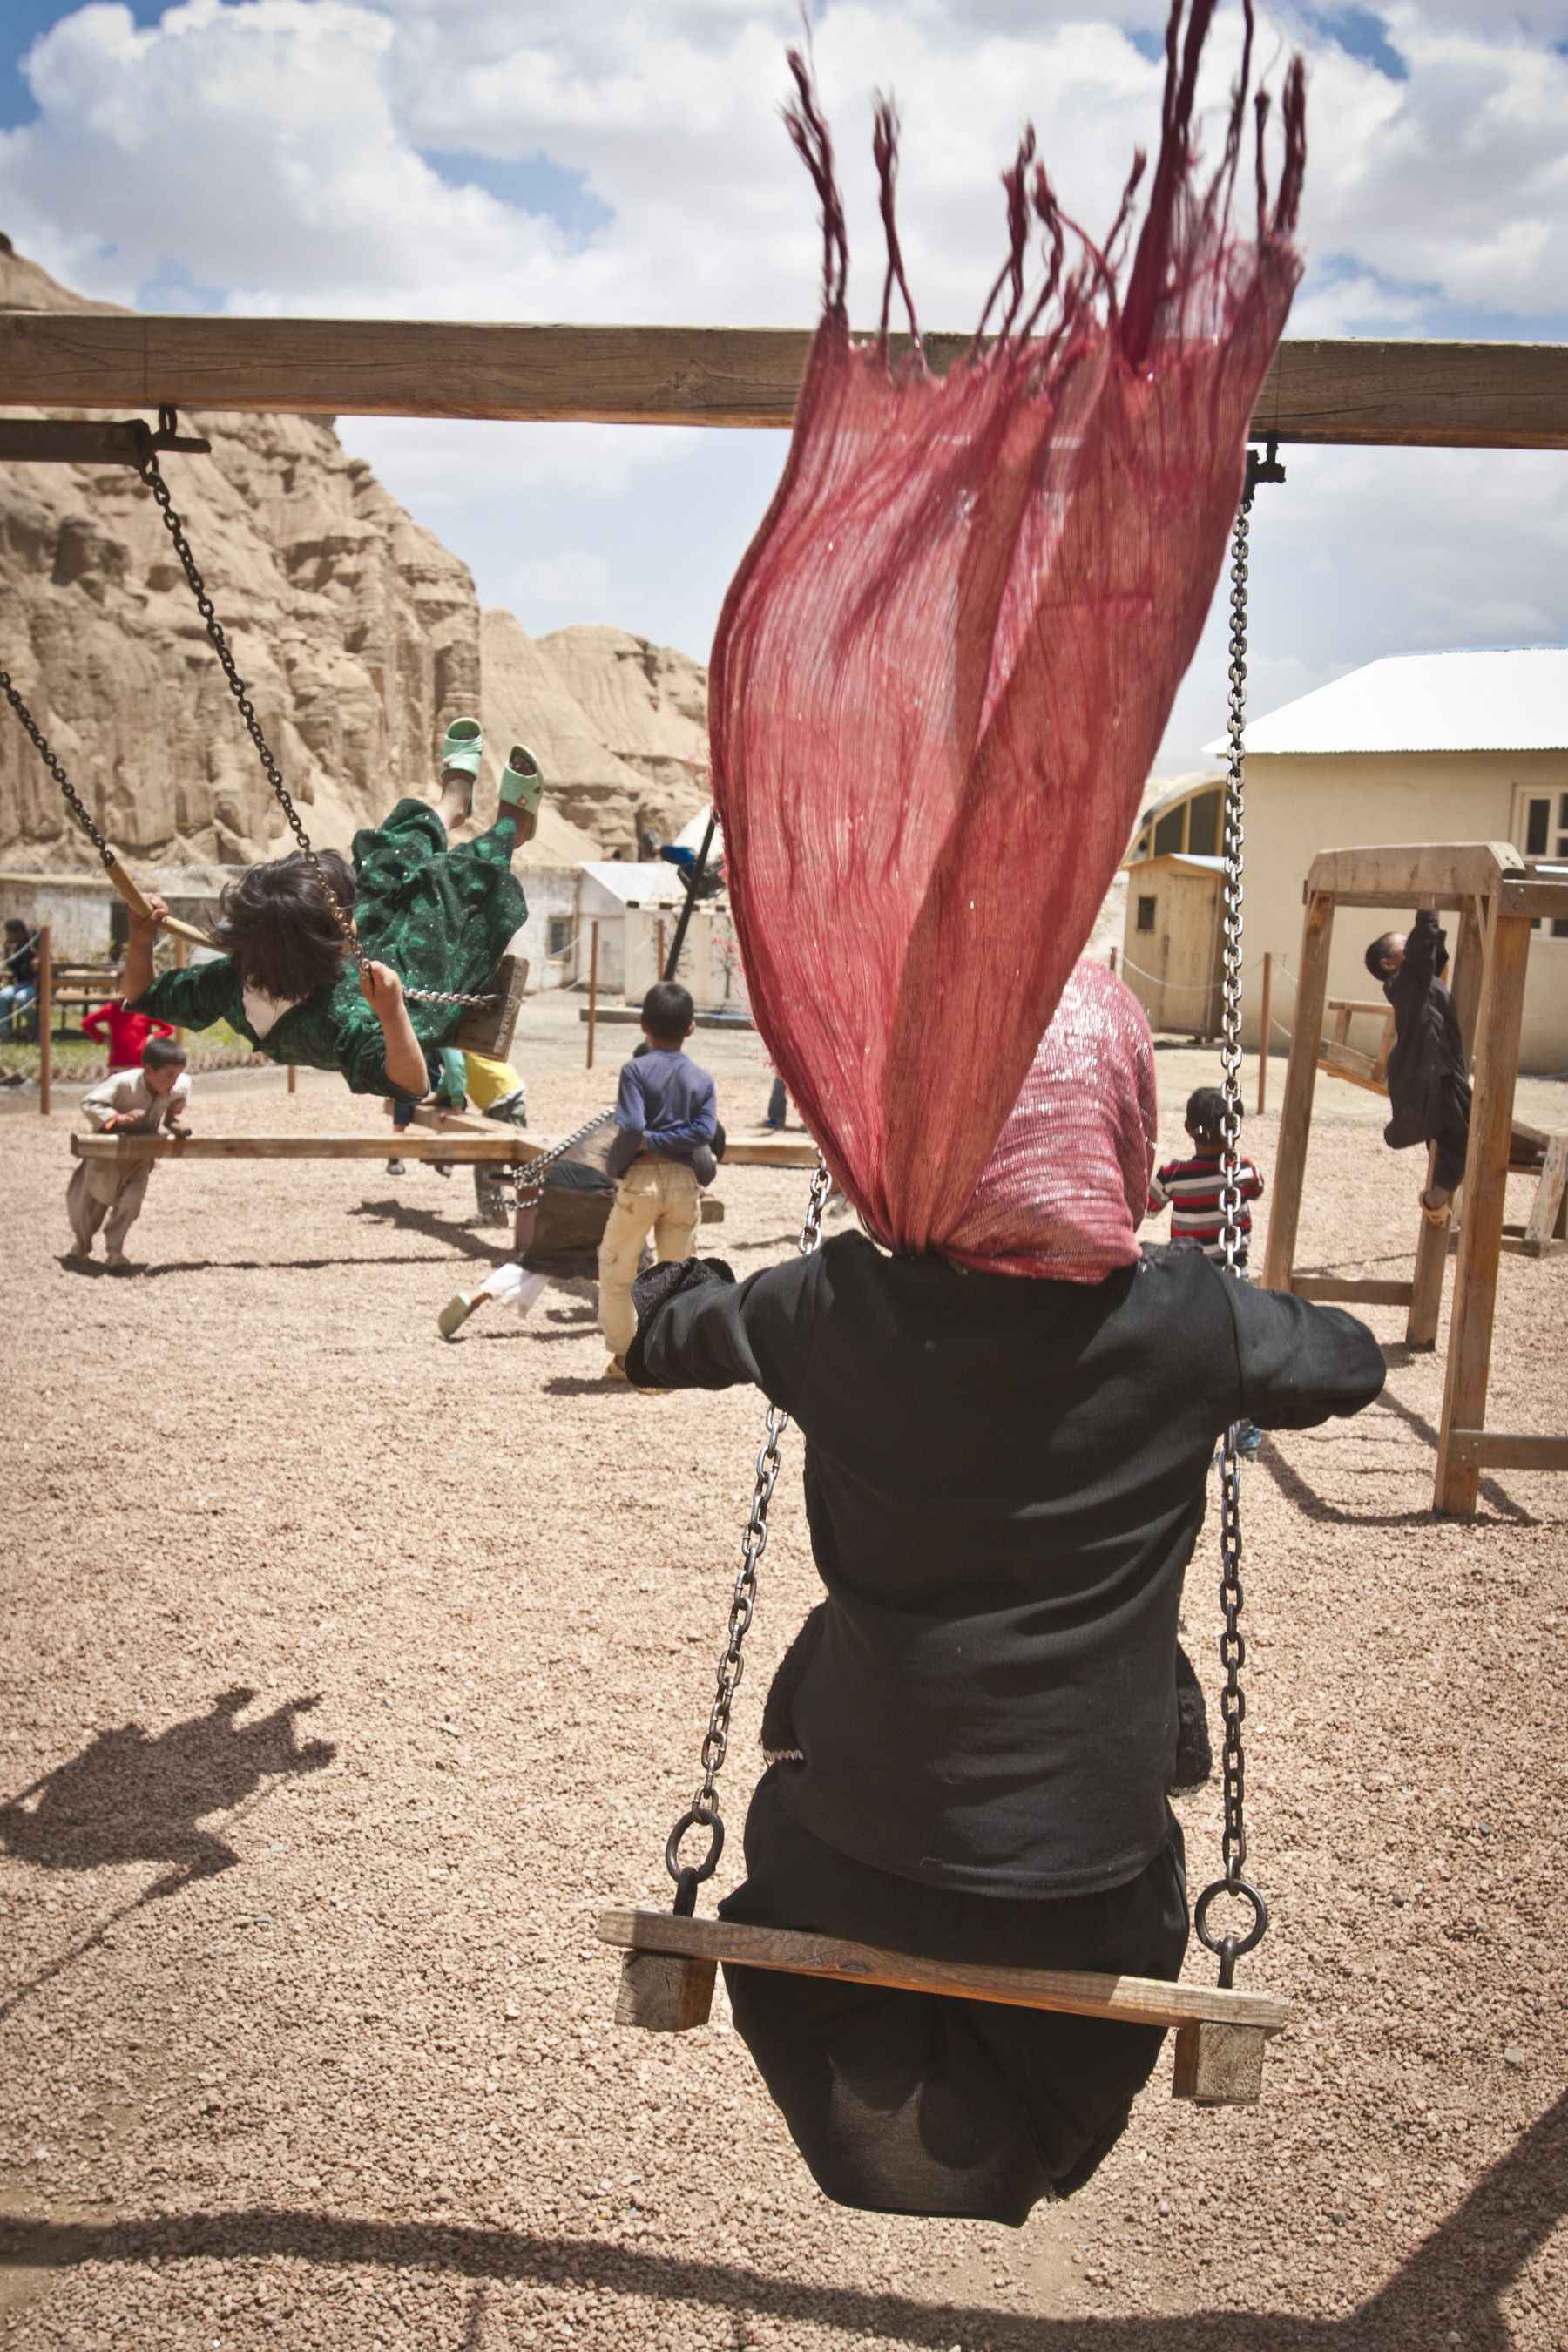 Two girls play on a swing set at the ARZU STUDIO HOPE community garden and playground in Bamyan, June 20, 2012. #afghanistan PHOTO CREDIT: Sgt. Ken Scar, 7th Mobile Public Affairs Detachment